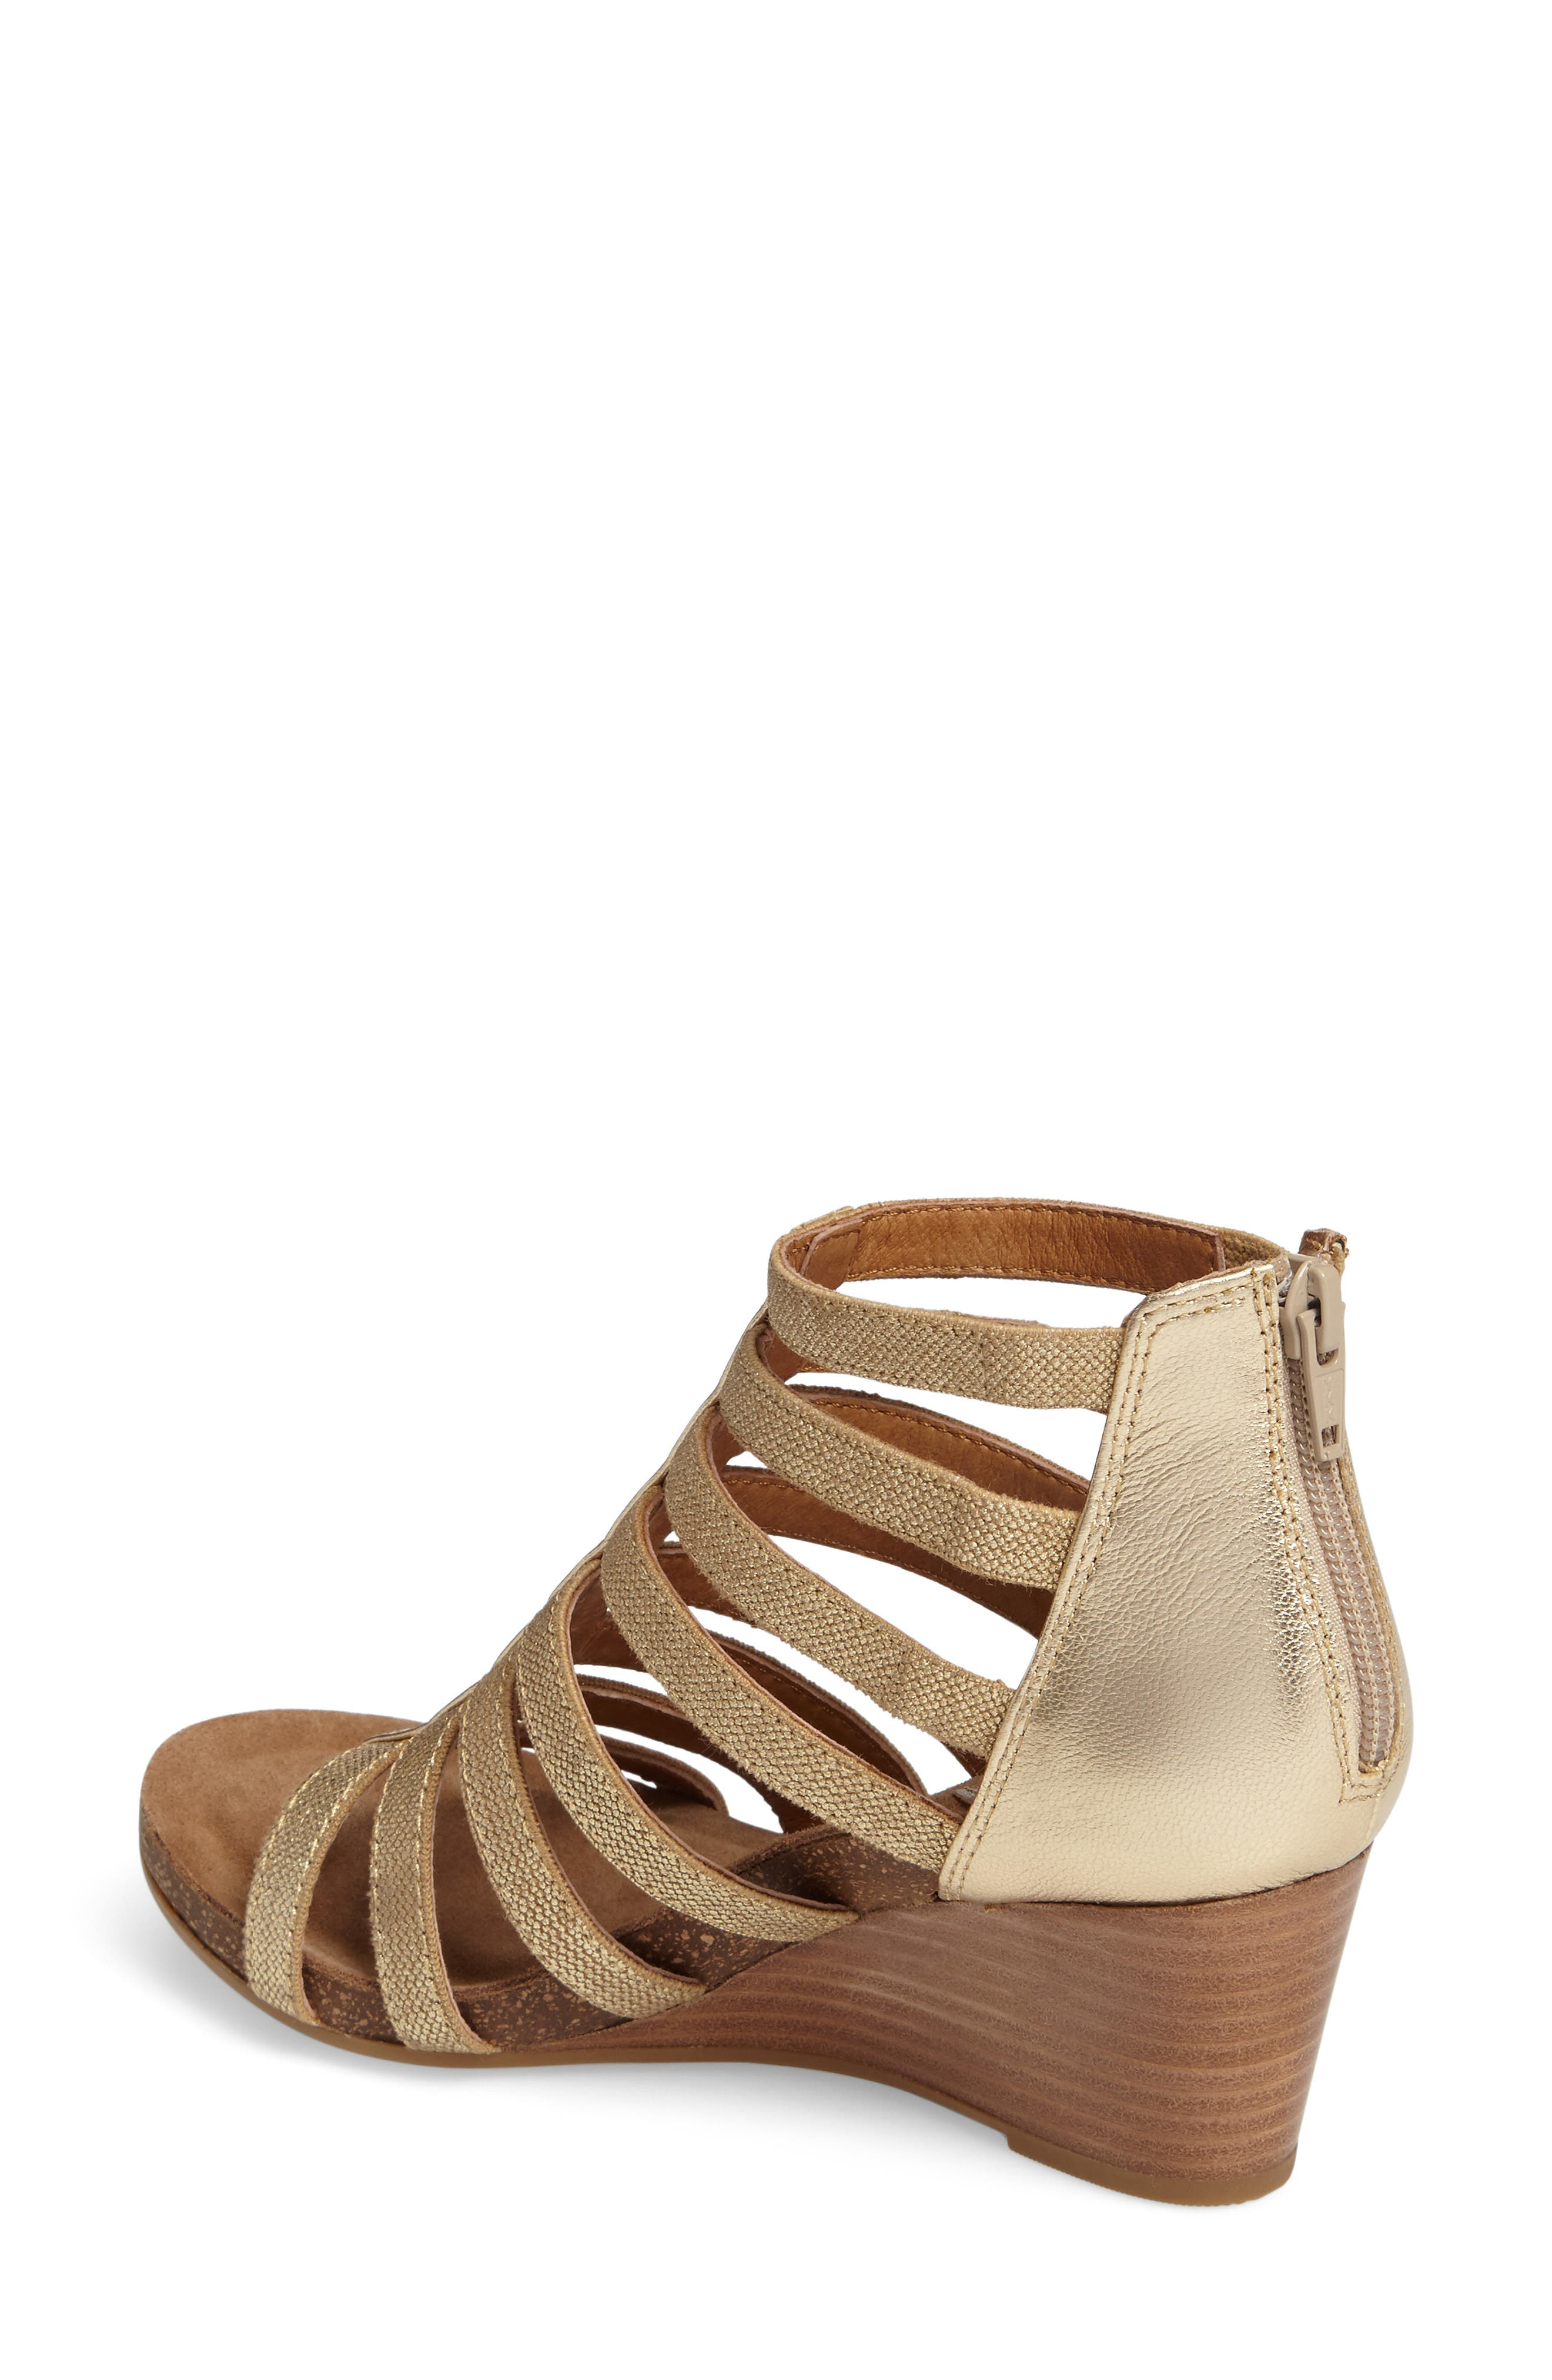 Mati Caged Wedge Sandal,                             Alternate thumbnail 6, color,